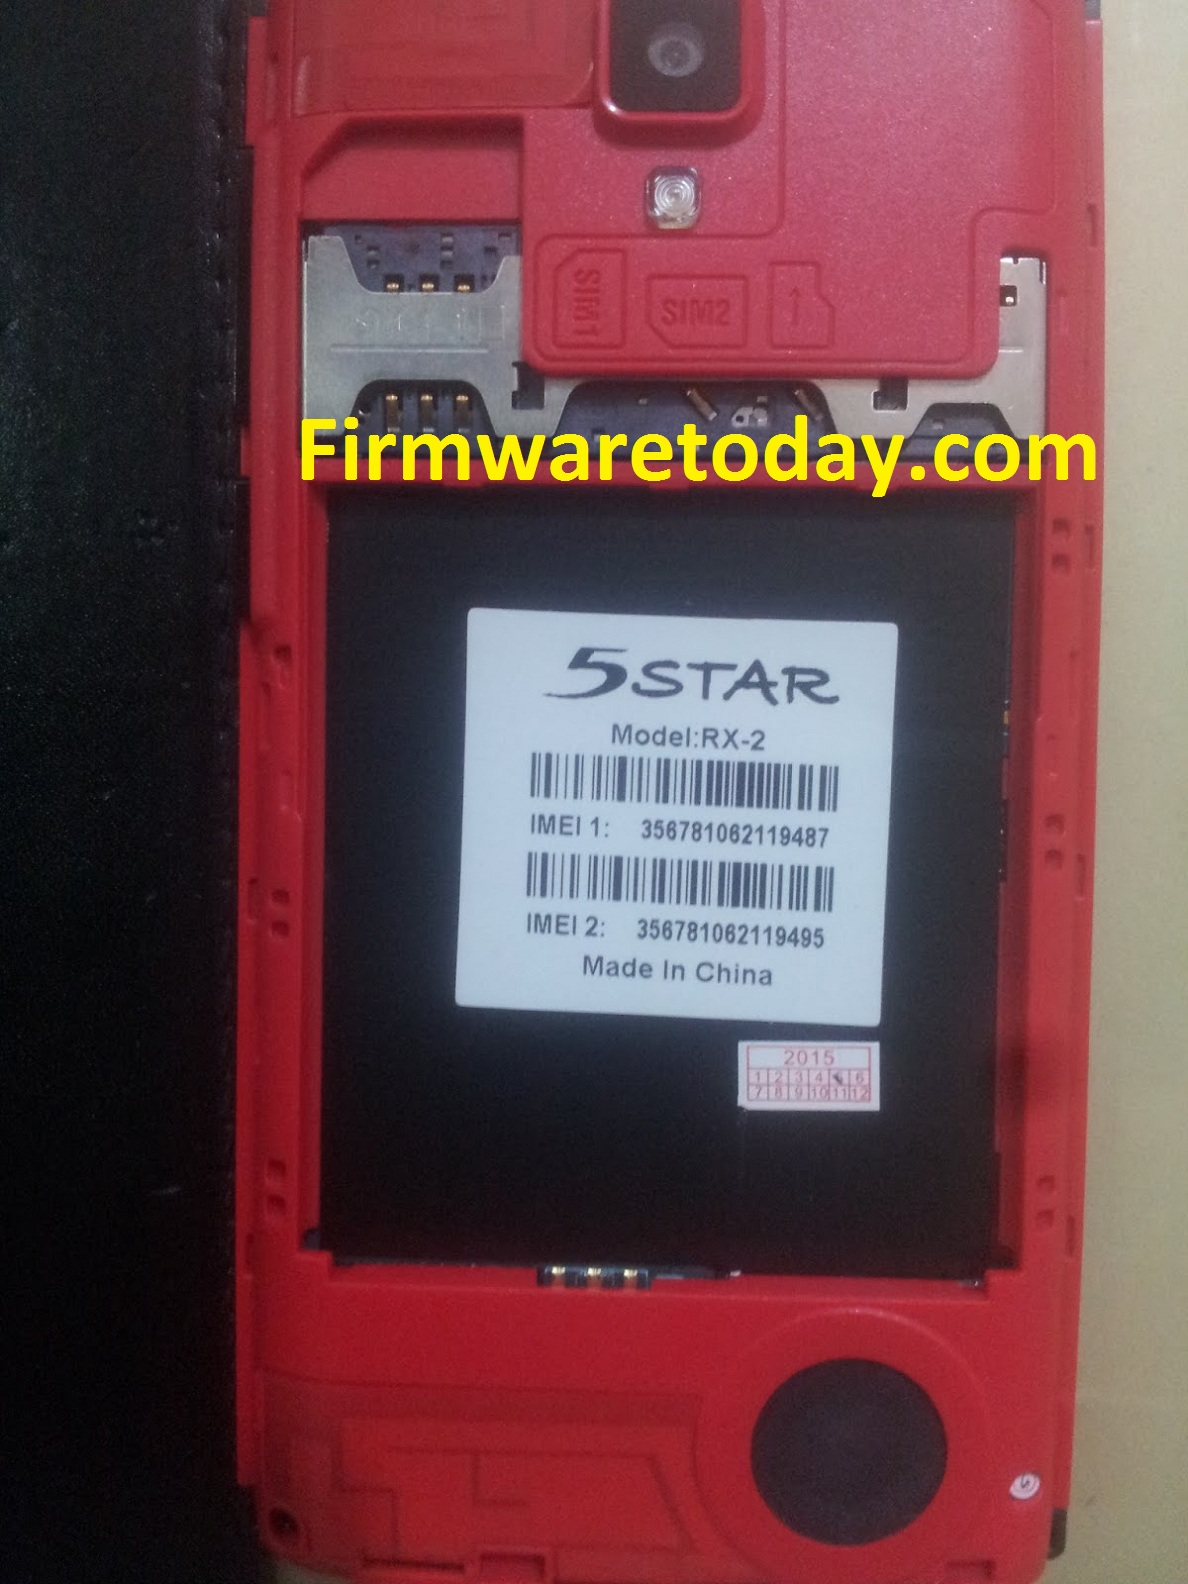 5Star RX2 F;ash File Free Firmware Update V1.20.1(MT6572) 100%Tested